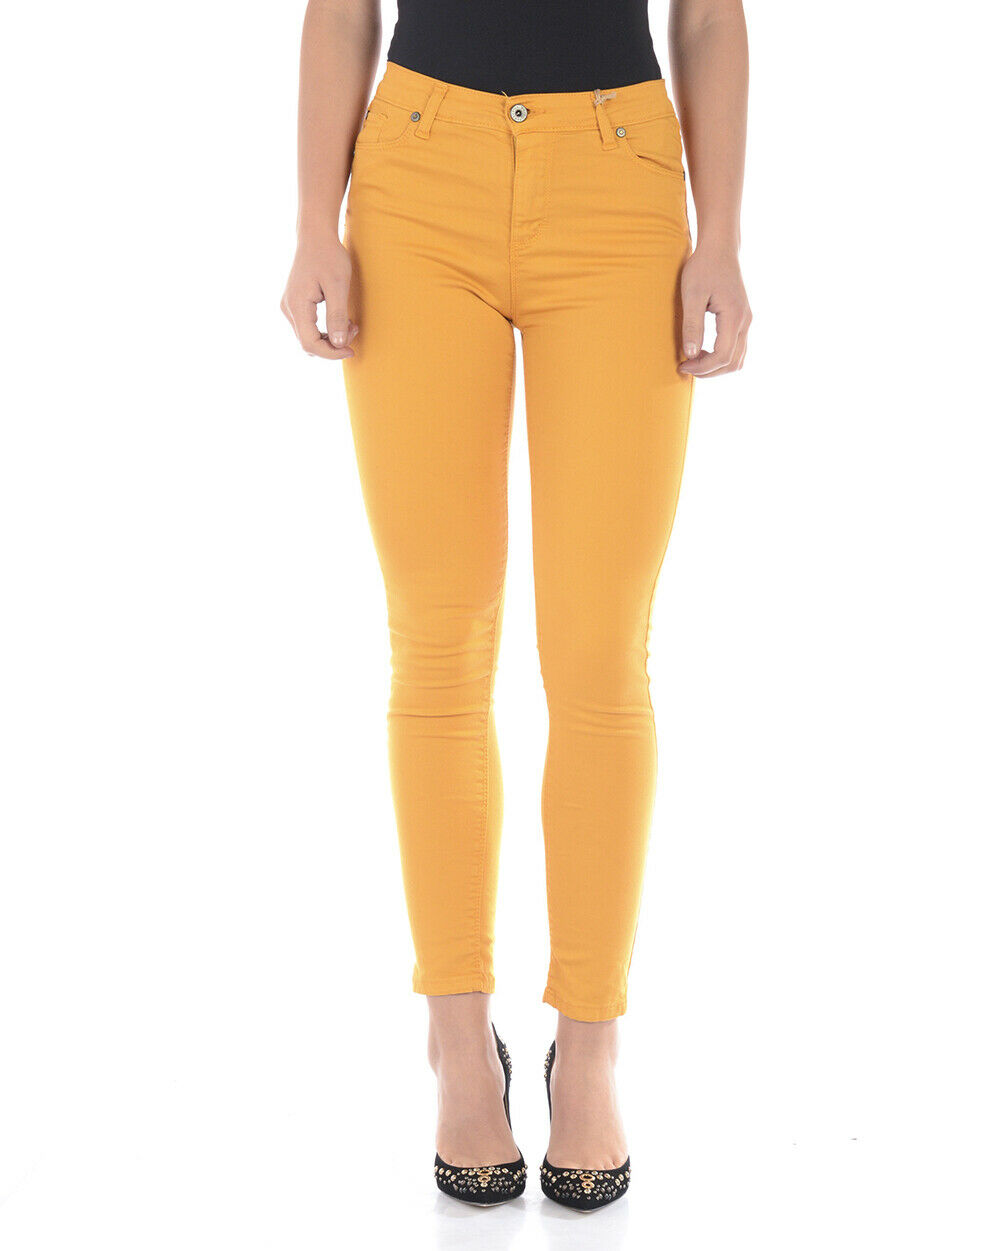 Please Jeans Cotton MADE IN ITALY Woman Yellow P78LEG5M07 Sz.S MAKE OFFER